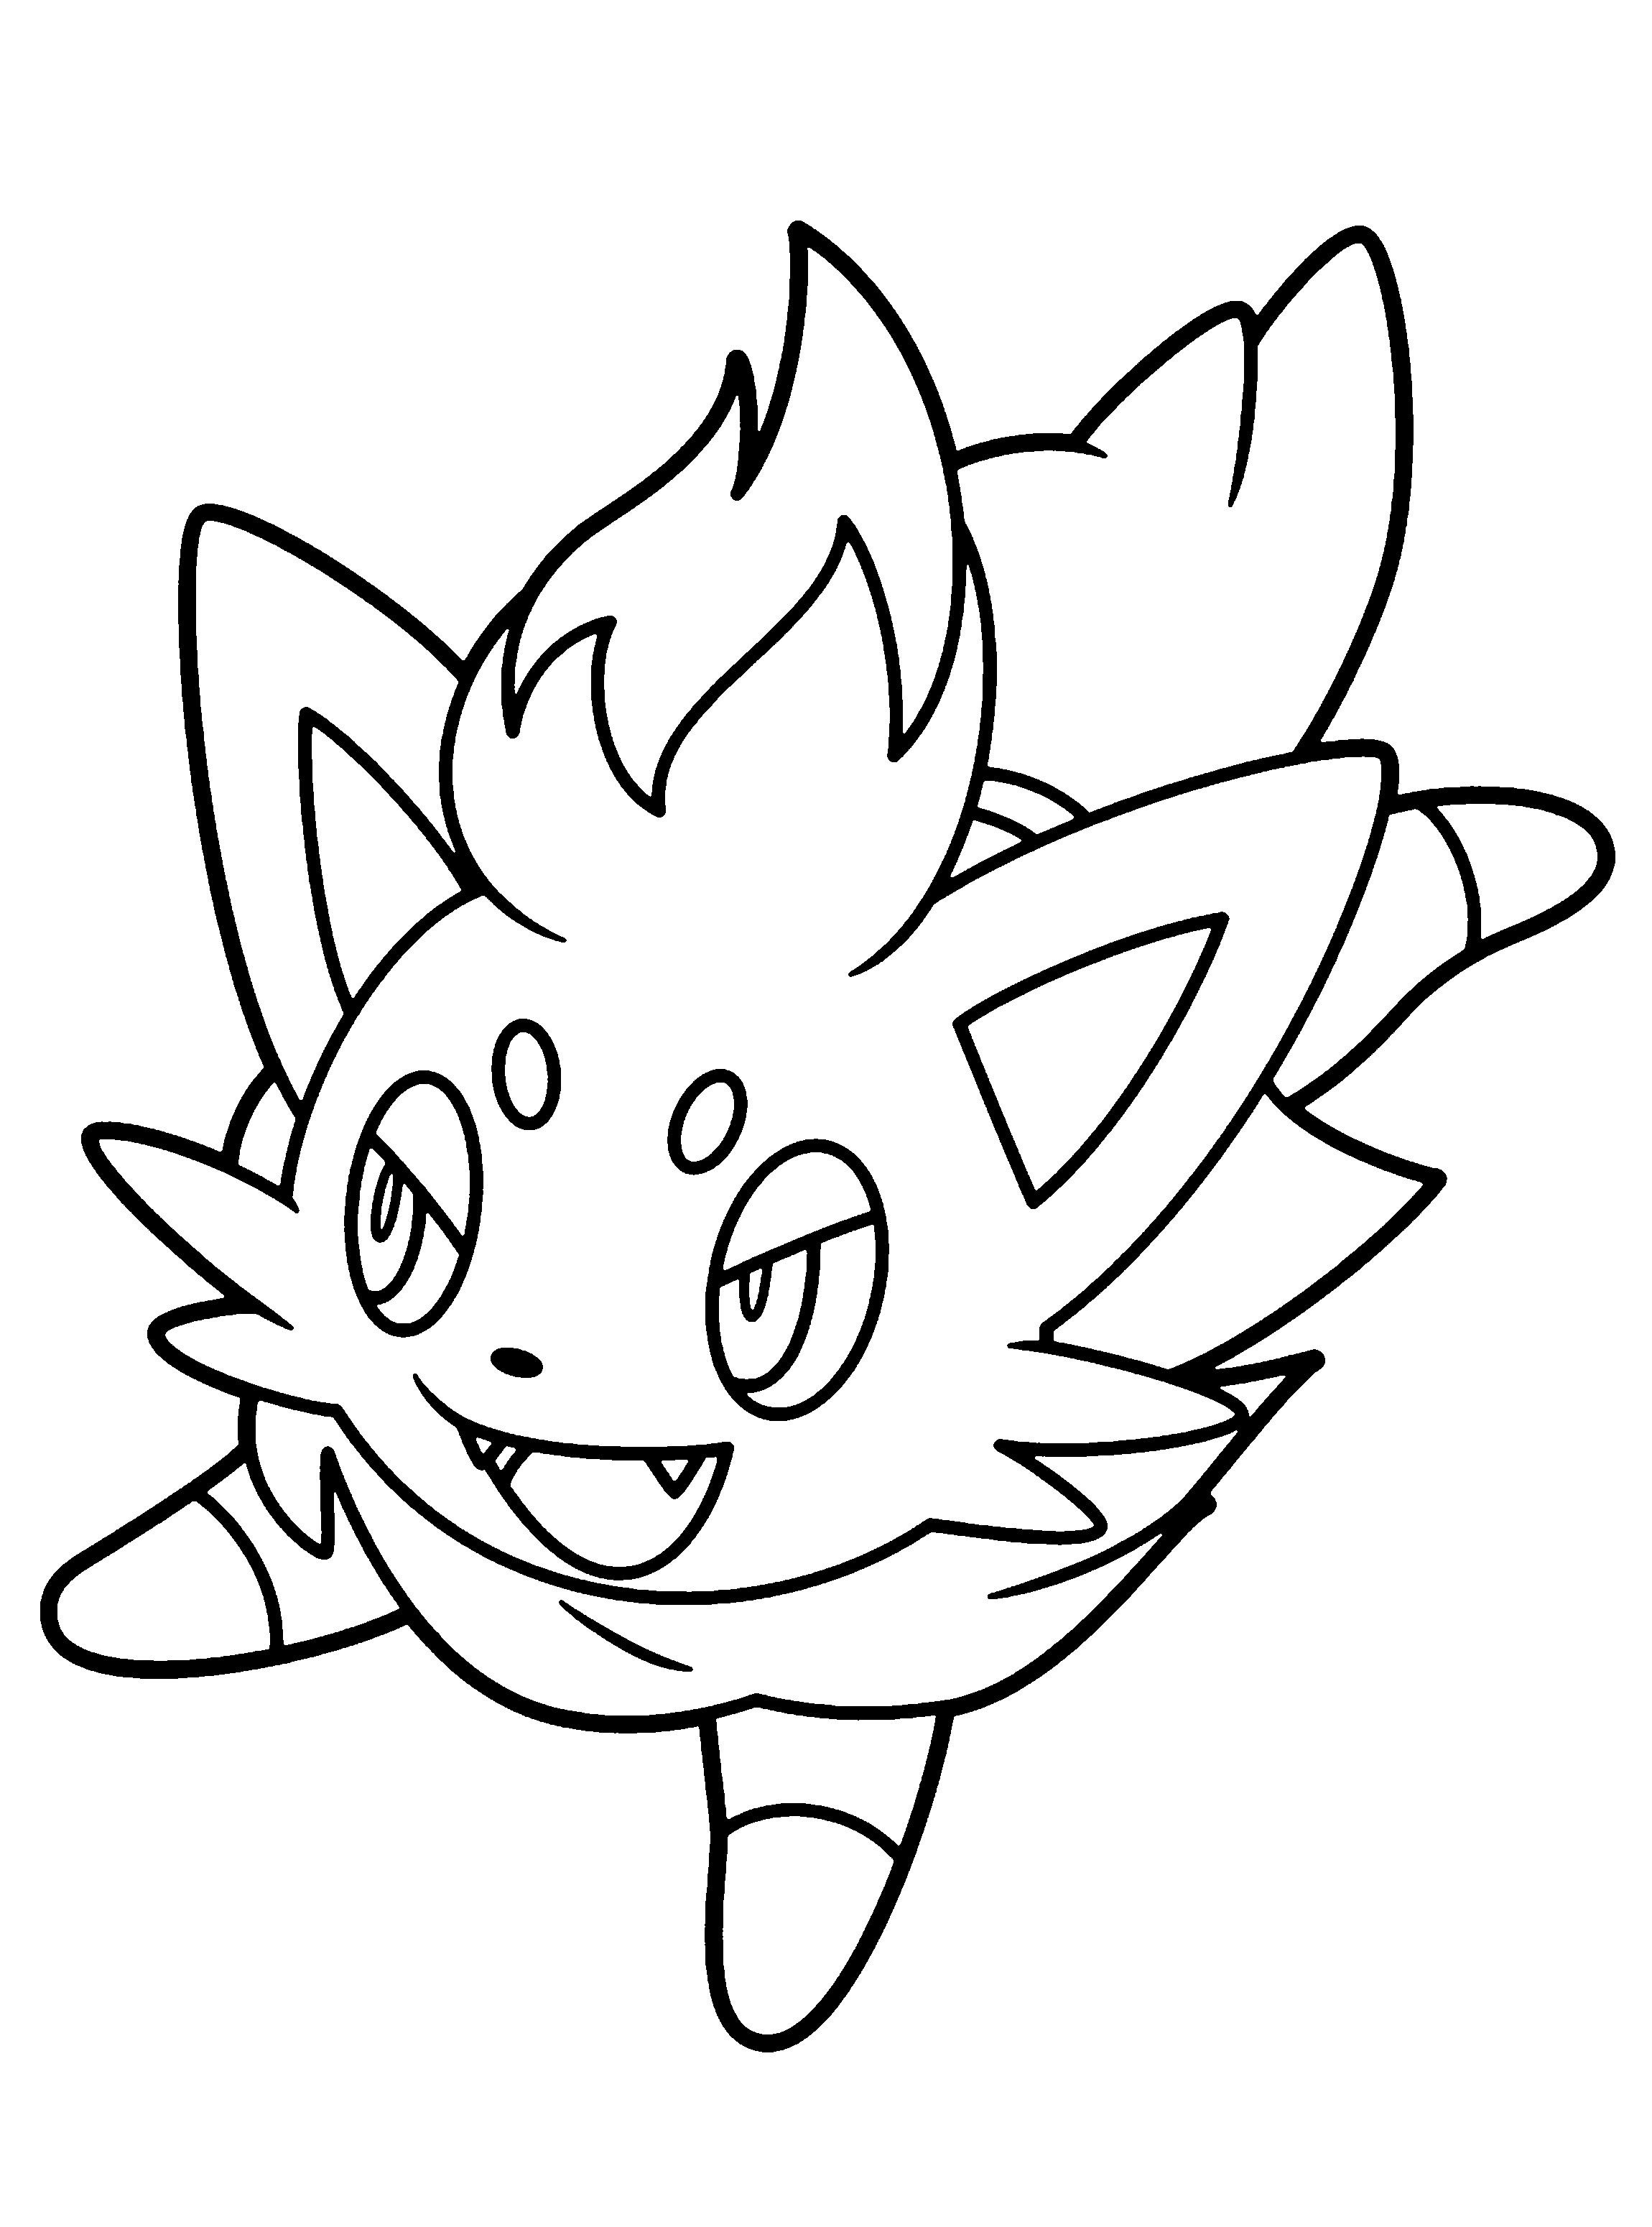 colouring pages pokemon black and white pokemon characters black and white coloring pages pokemon black and pages colouring white